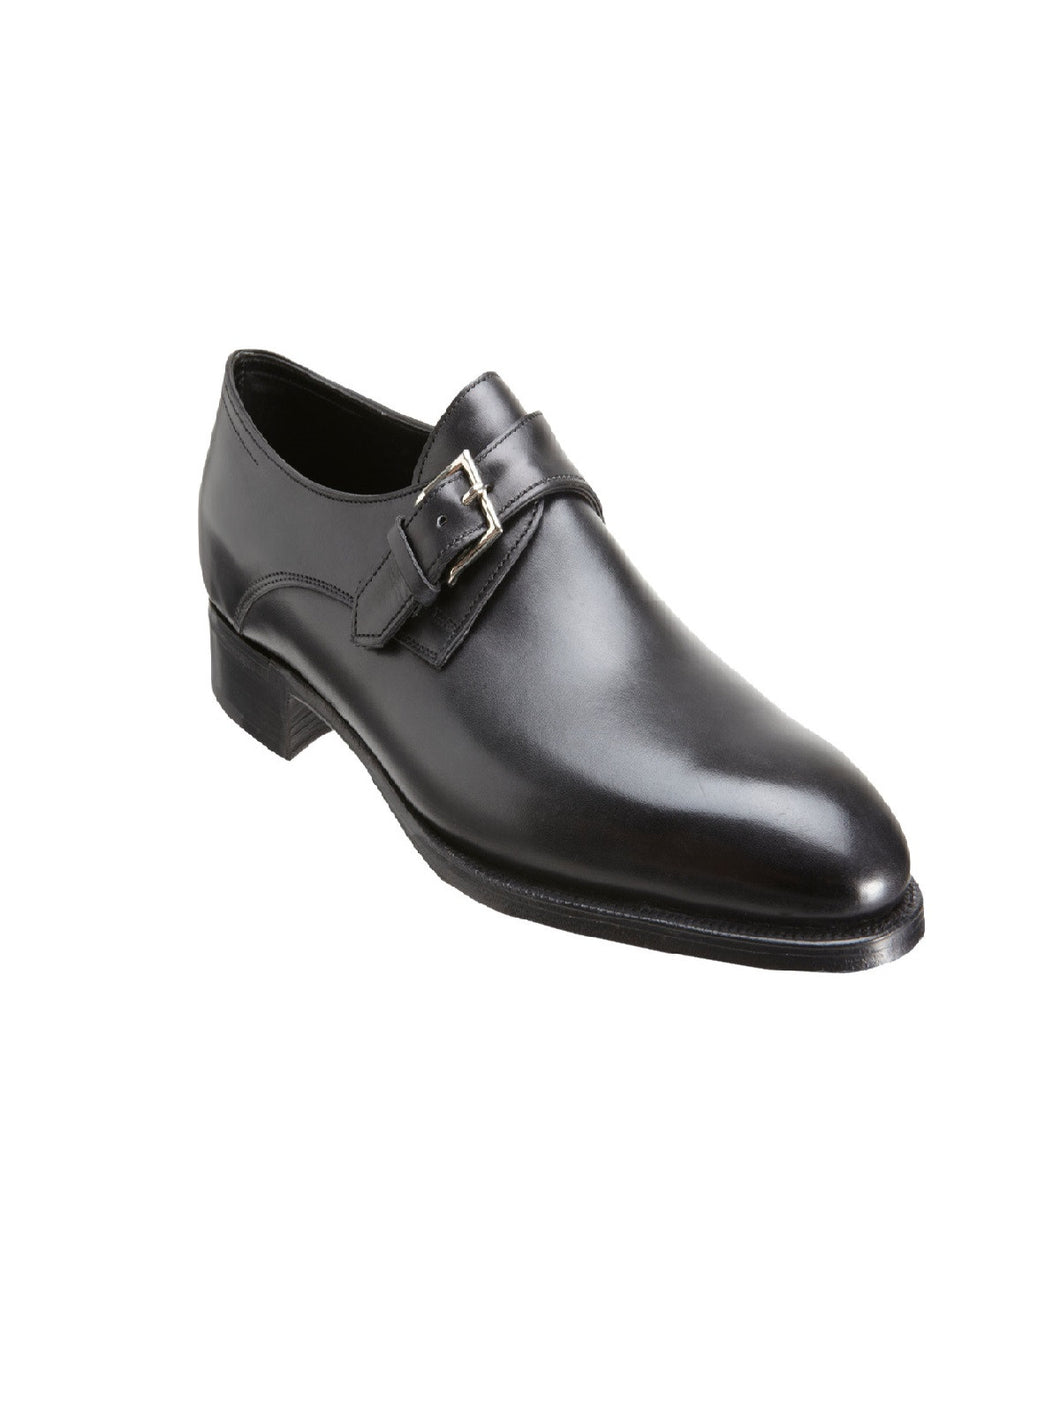 Monkstrap pure leather shoes